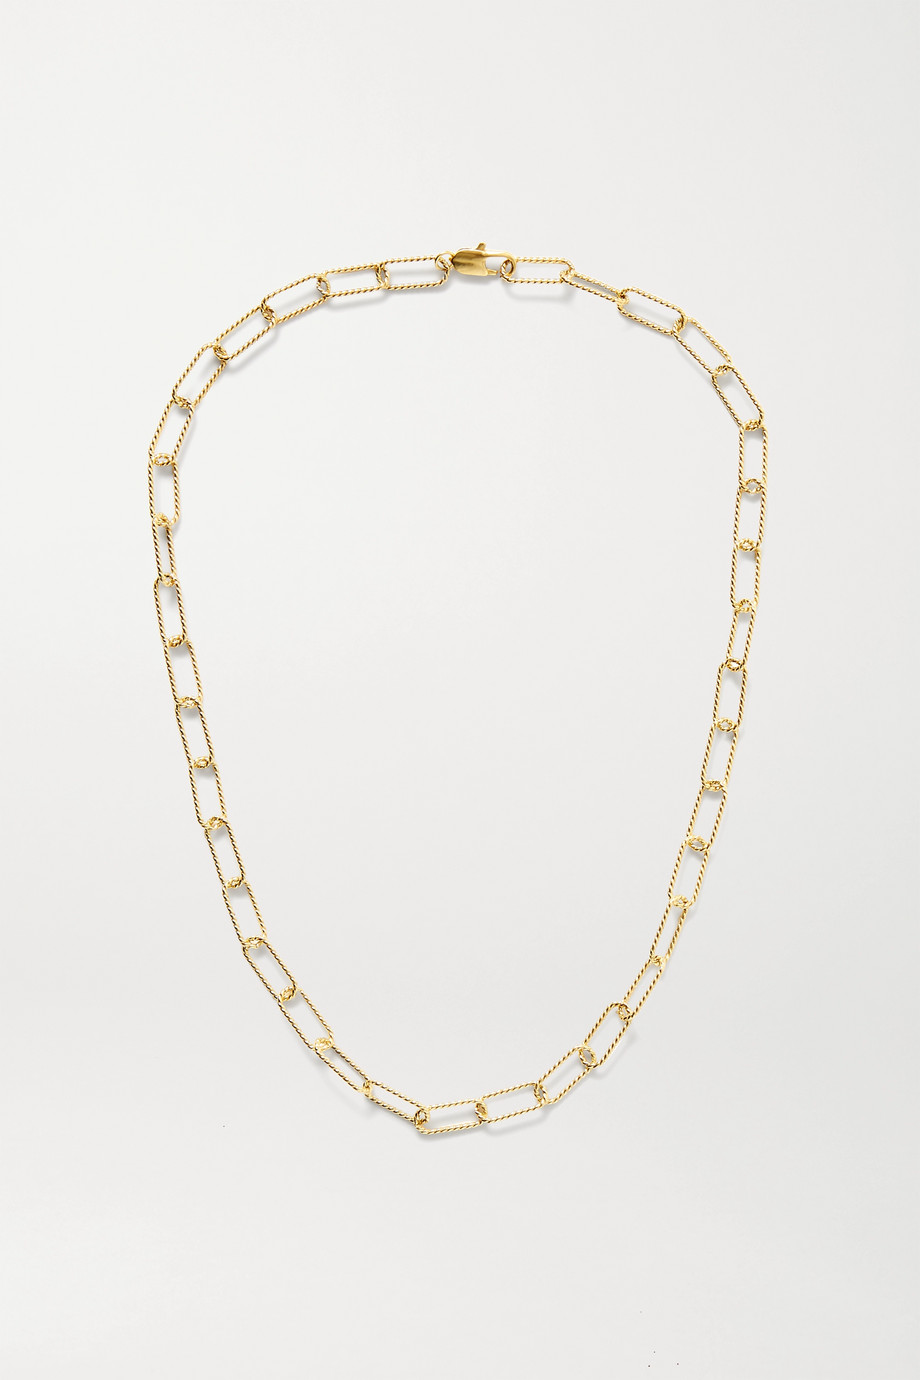 Laura Lombardi Rosa gold-plated necklace